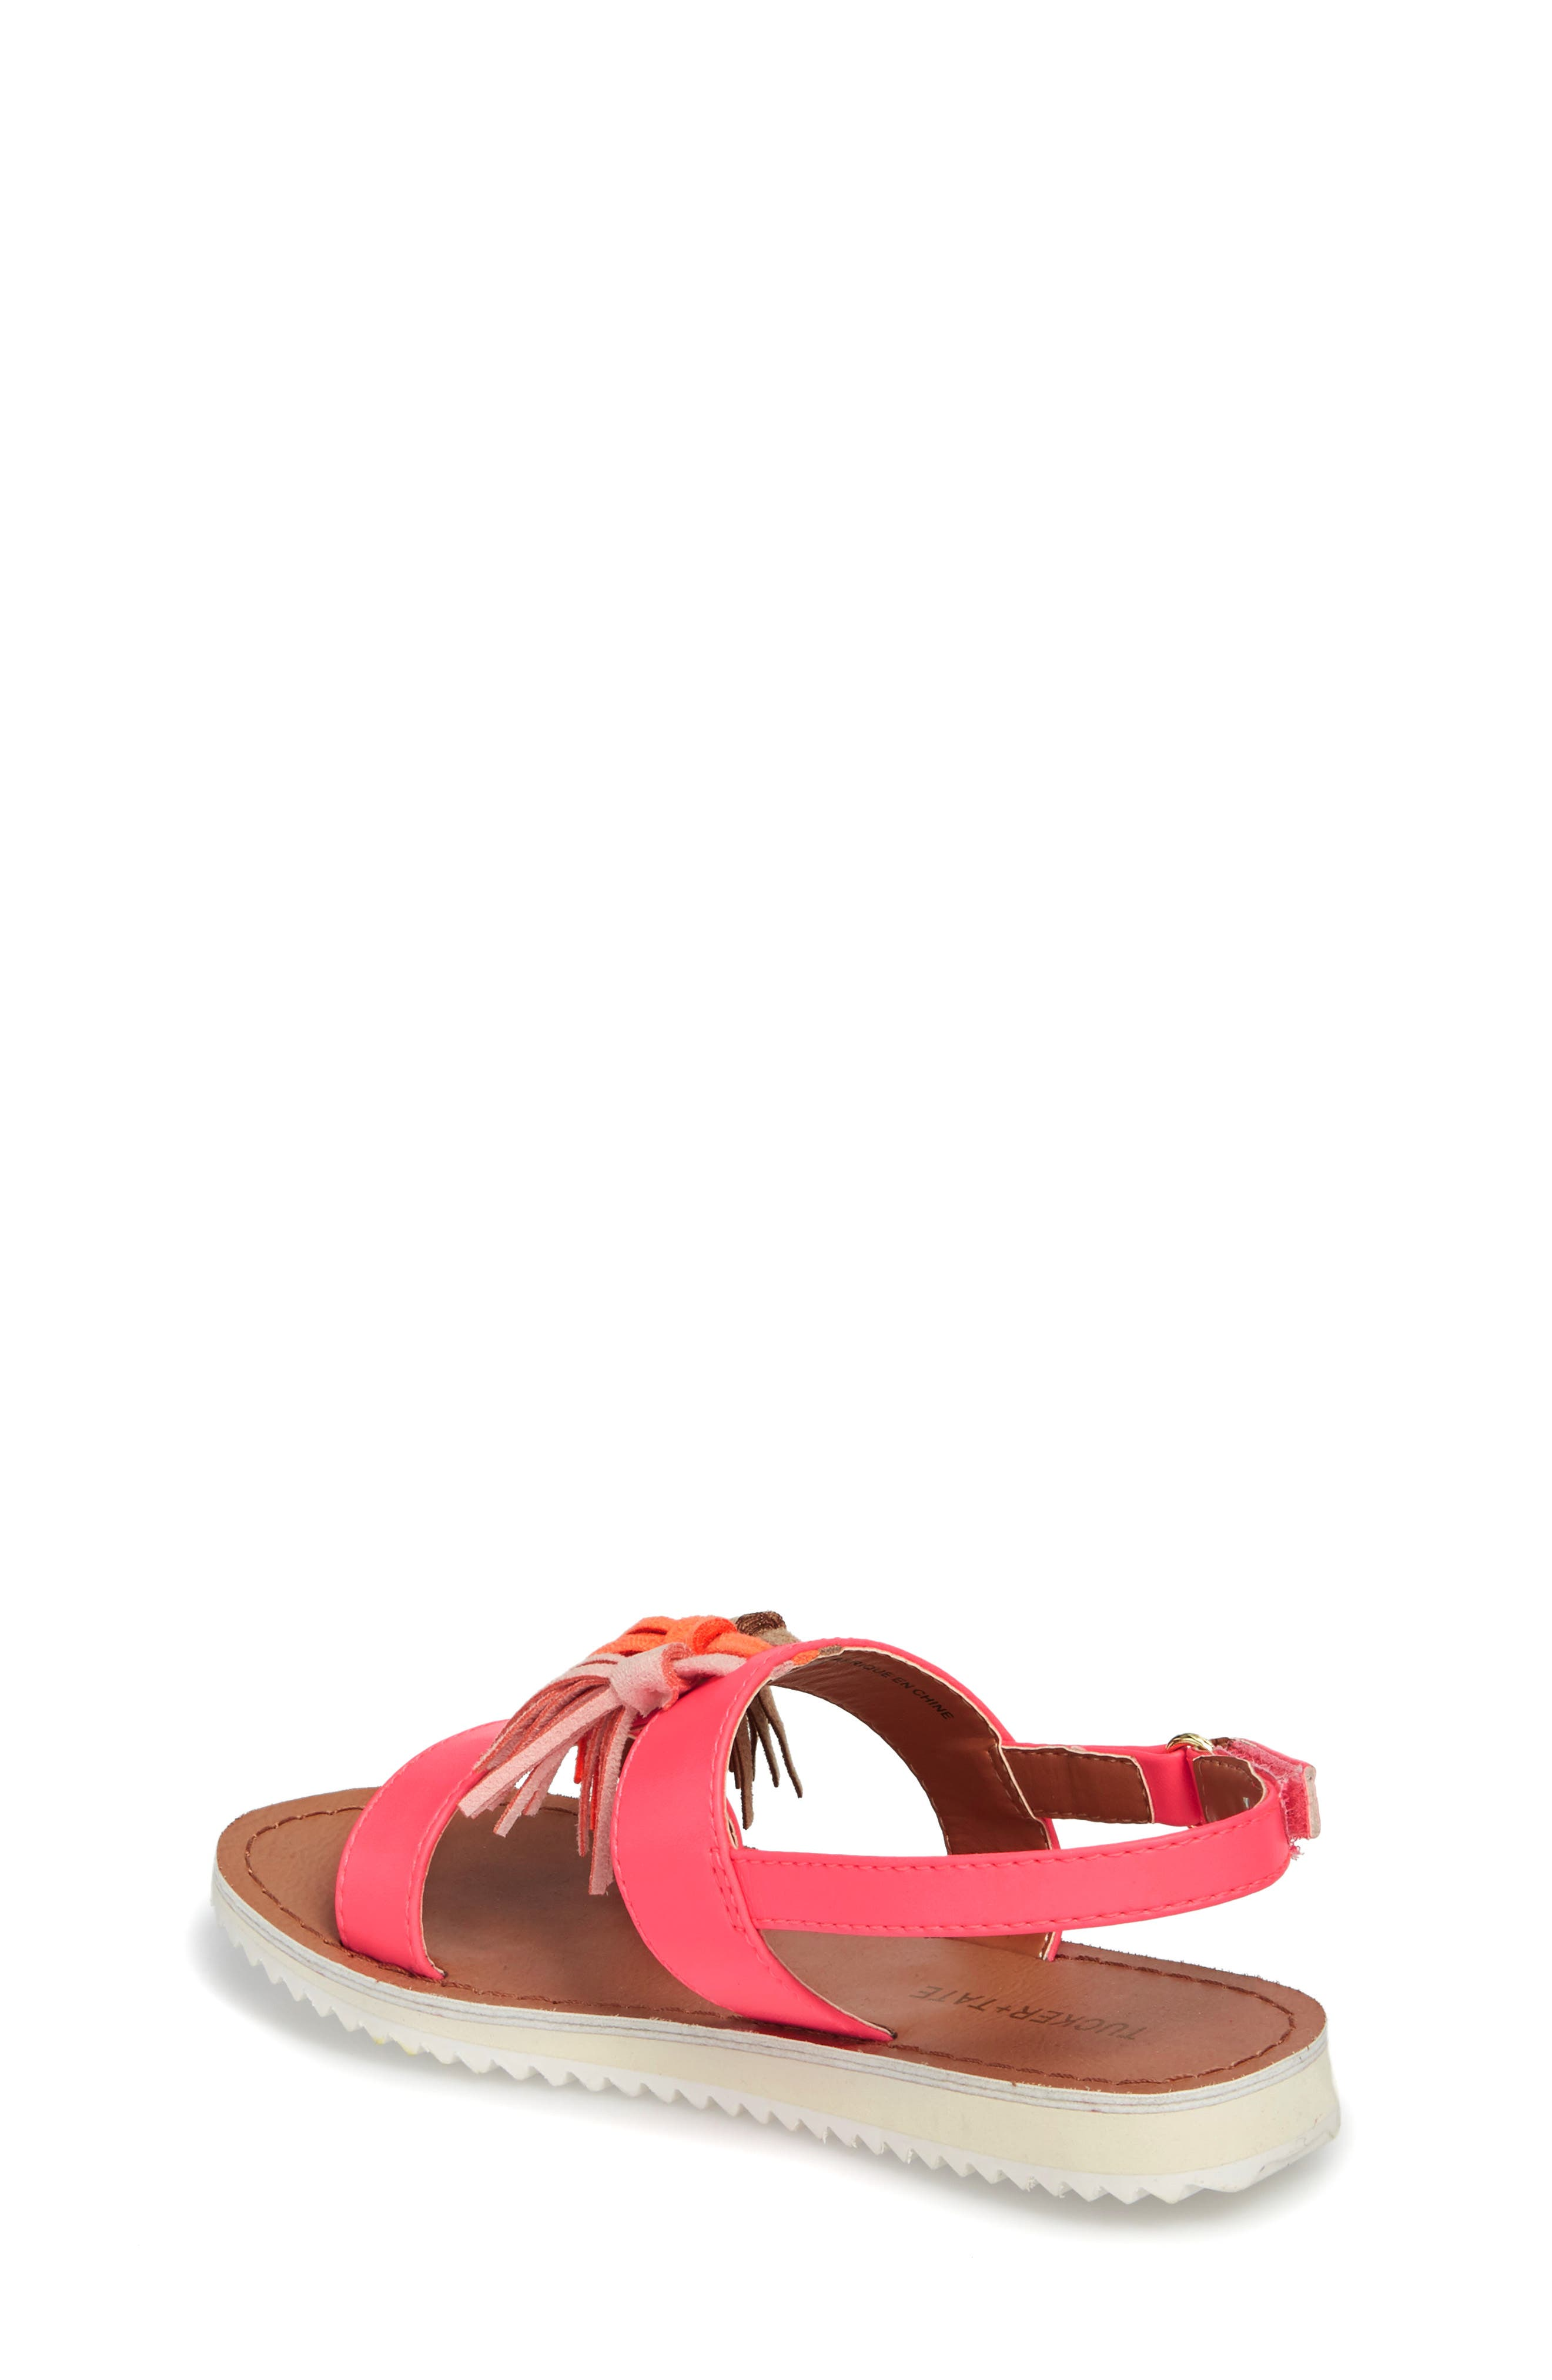 Mari Tasseled Sandal,                             Alternate thumbnail 2, color,                             690